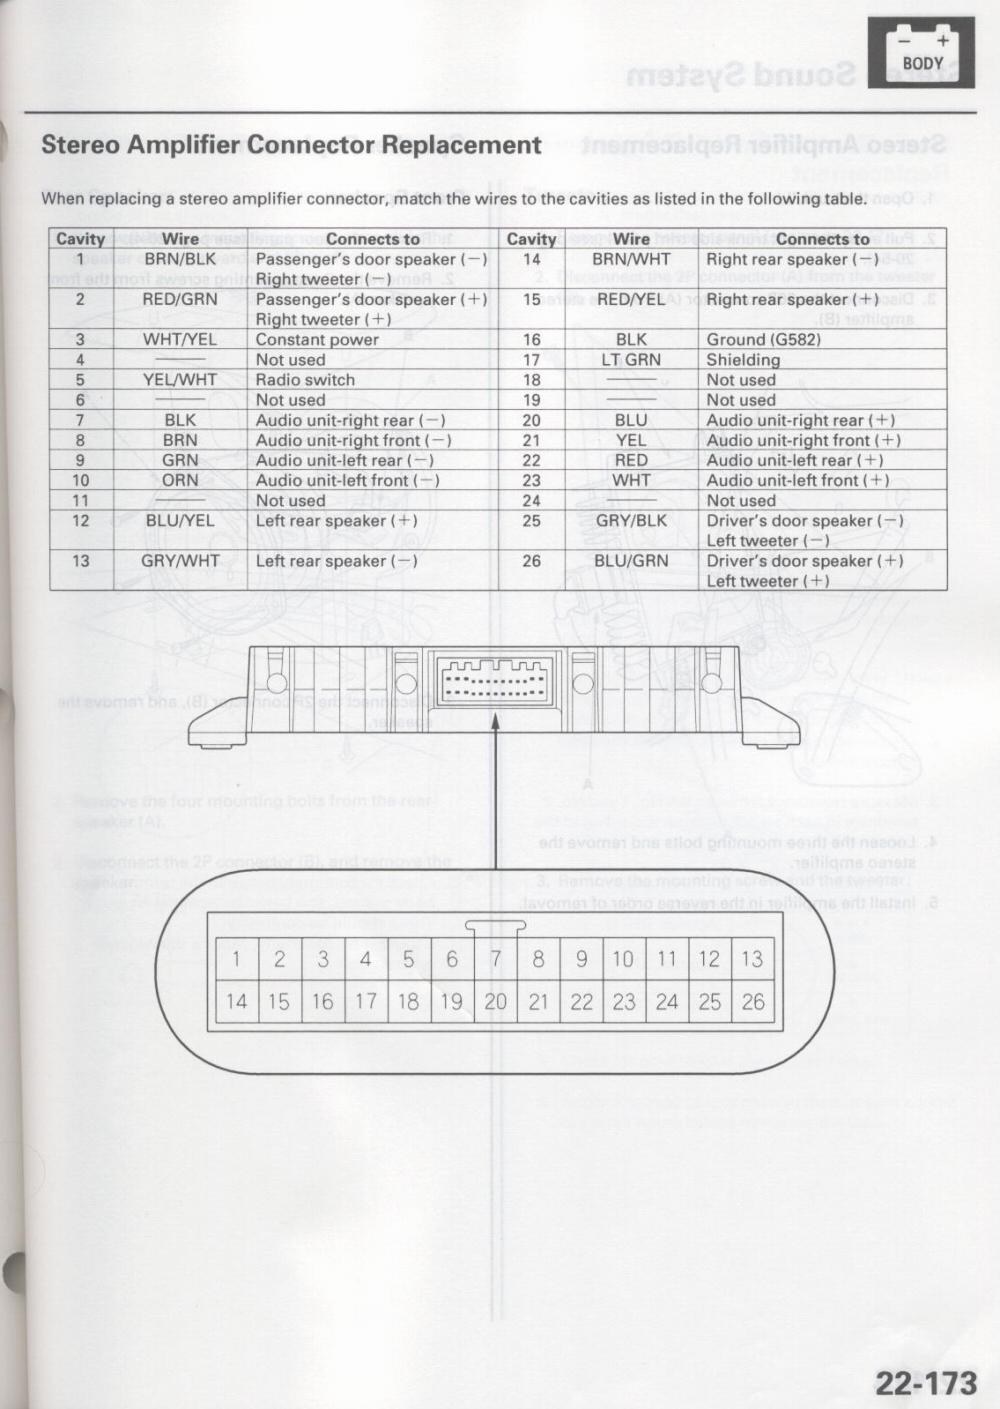 acura tl speaker wiring diagram 1991 honda civic radio car stereo audio autoradio connector wire installation schematic schema ...